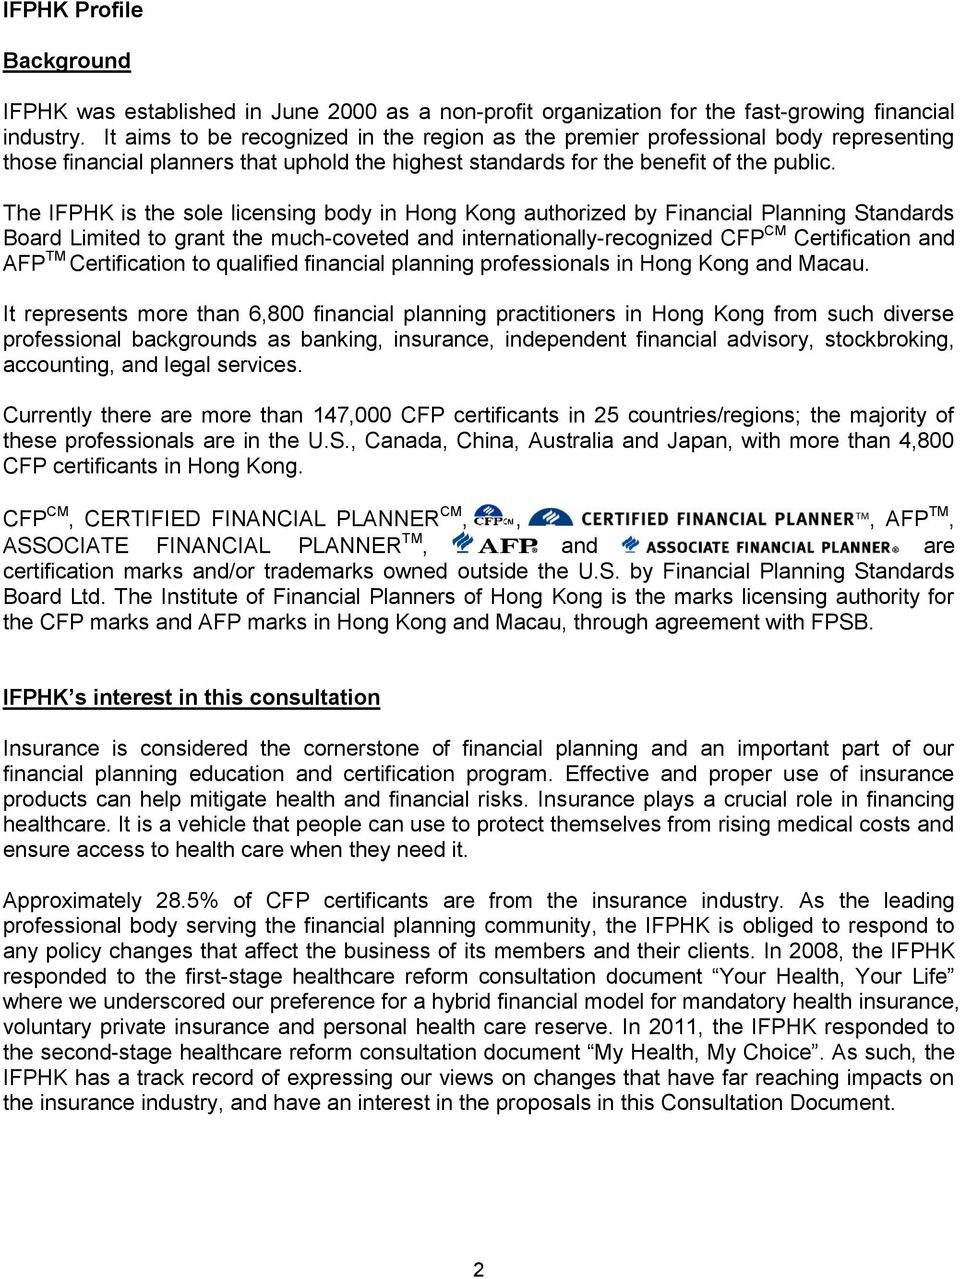 The IFPHK is the sole licensing body in Hong Kong authorized by Financial Planning Standards Board Limited to grant the much-coveted and internationally-recognized CFP CM Certification and AFP TM